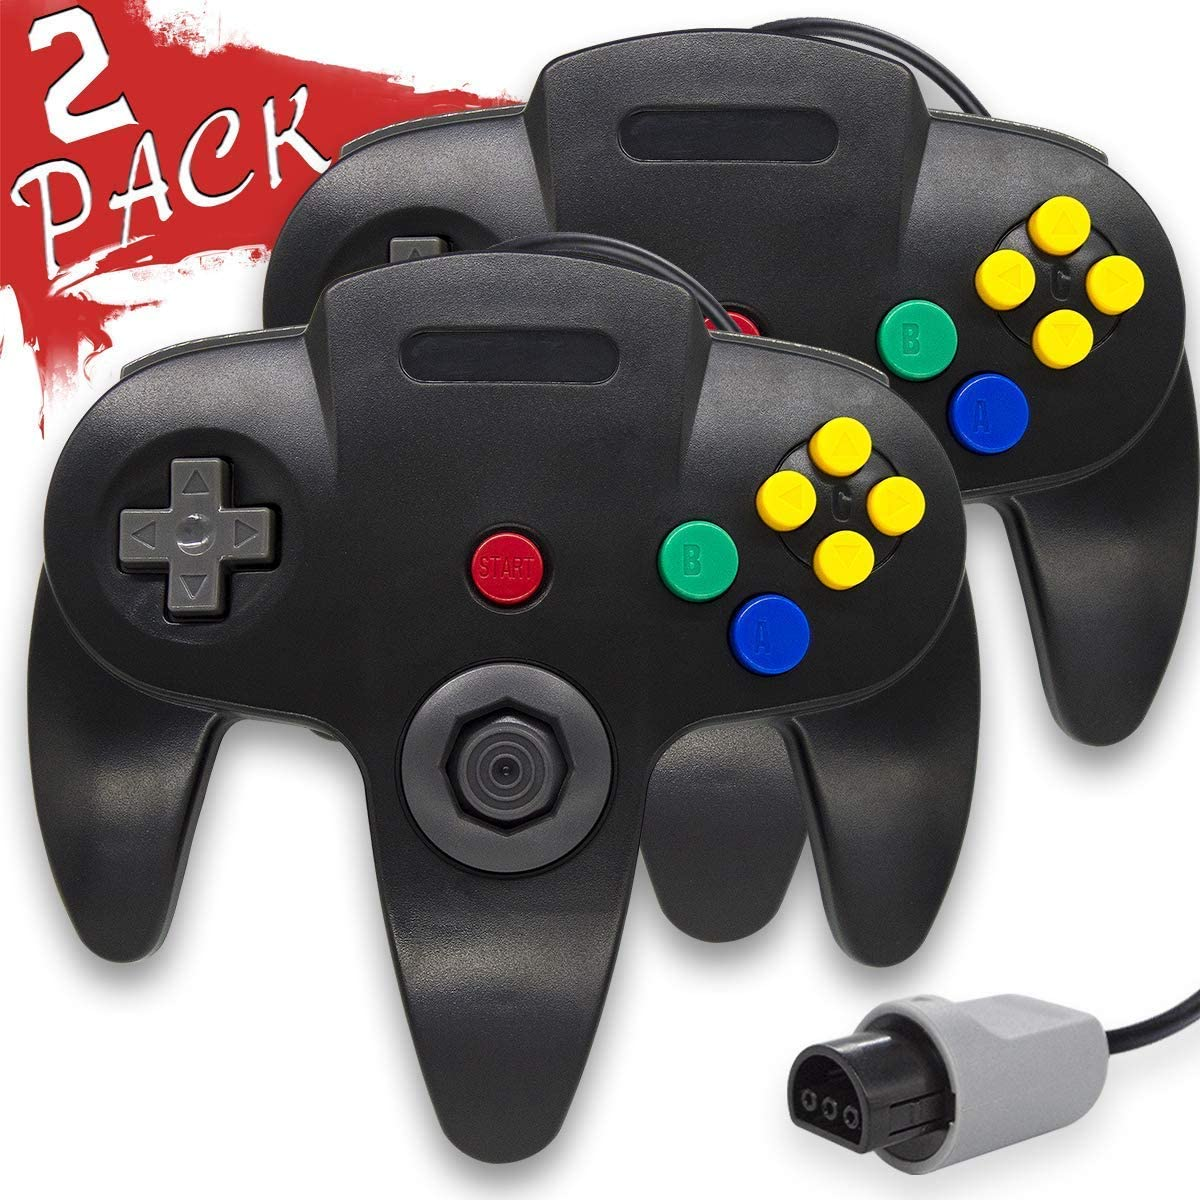 Wired Controller for Nintendo 64 N64 Console, Upgraded Joystick Classic Video Game Gamepad (Black and Black)